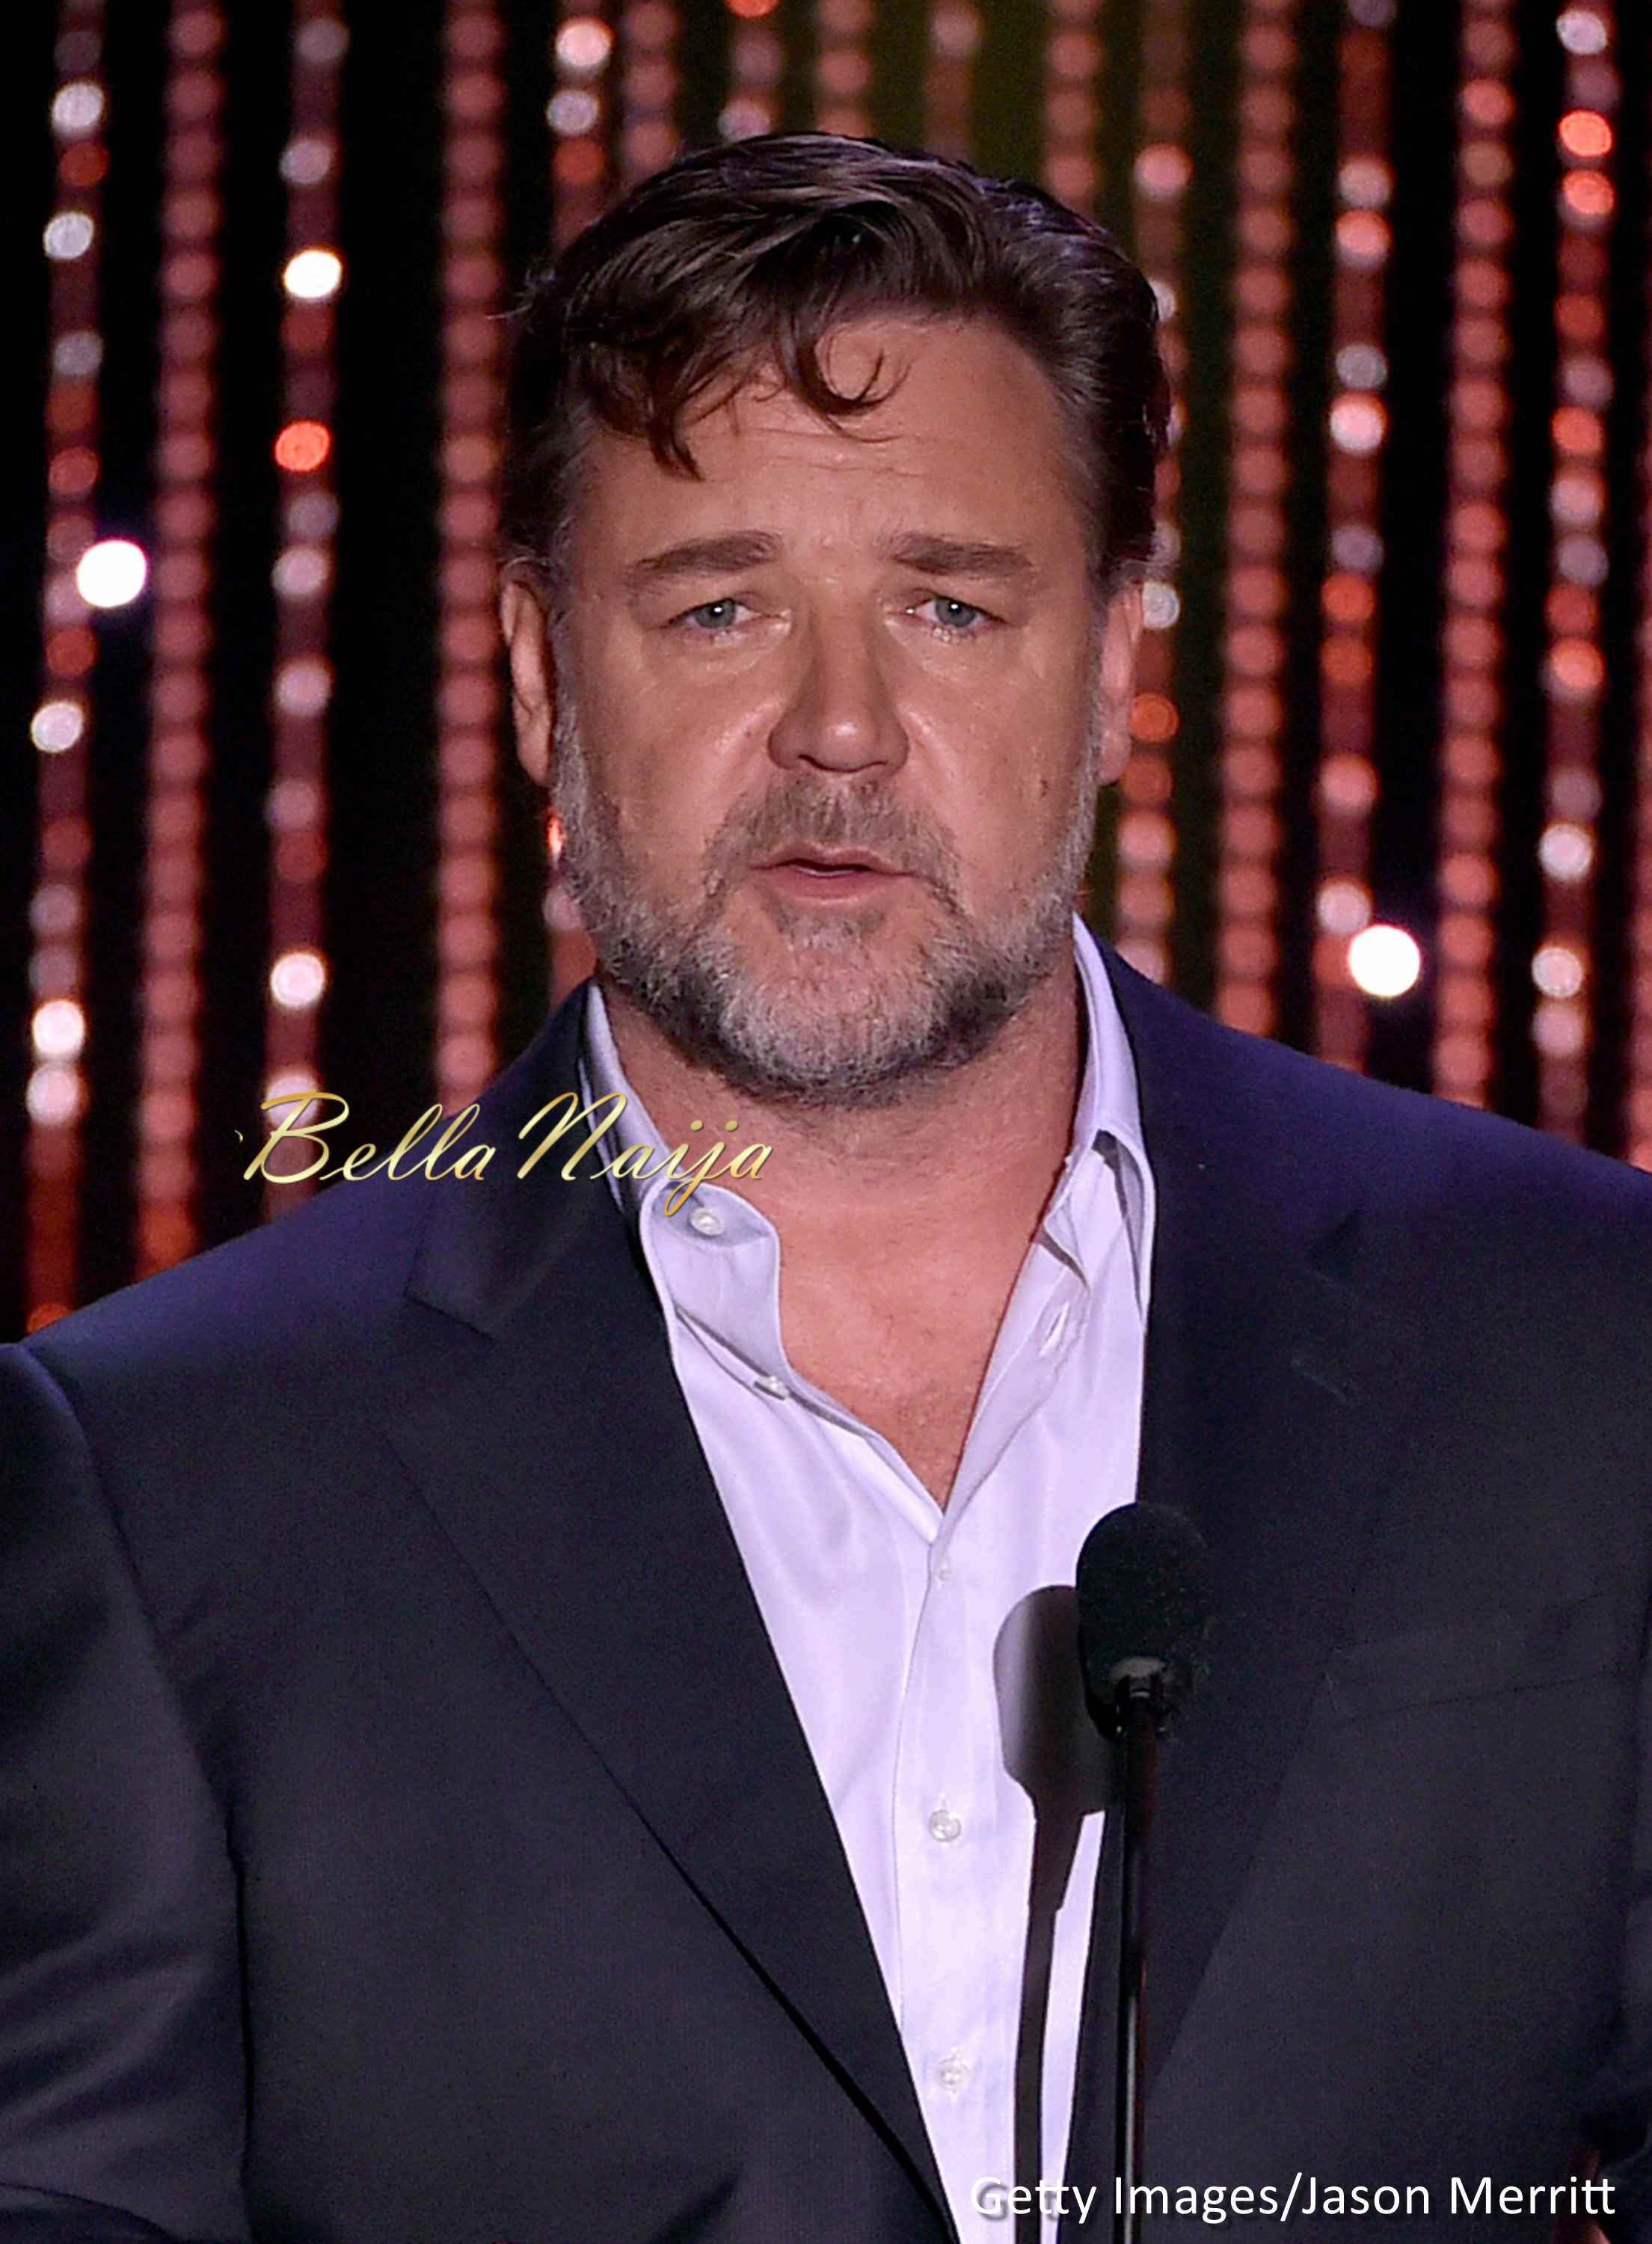 hollywood stars russell crowe - 754×1024